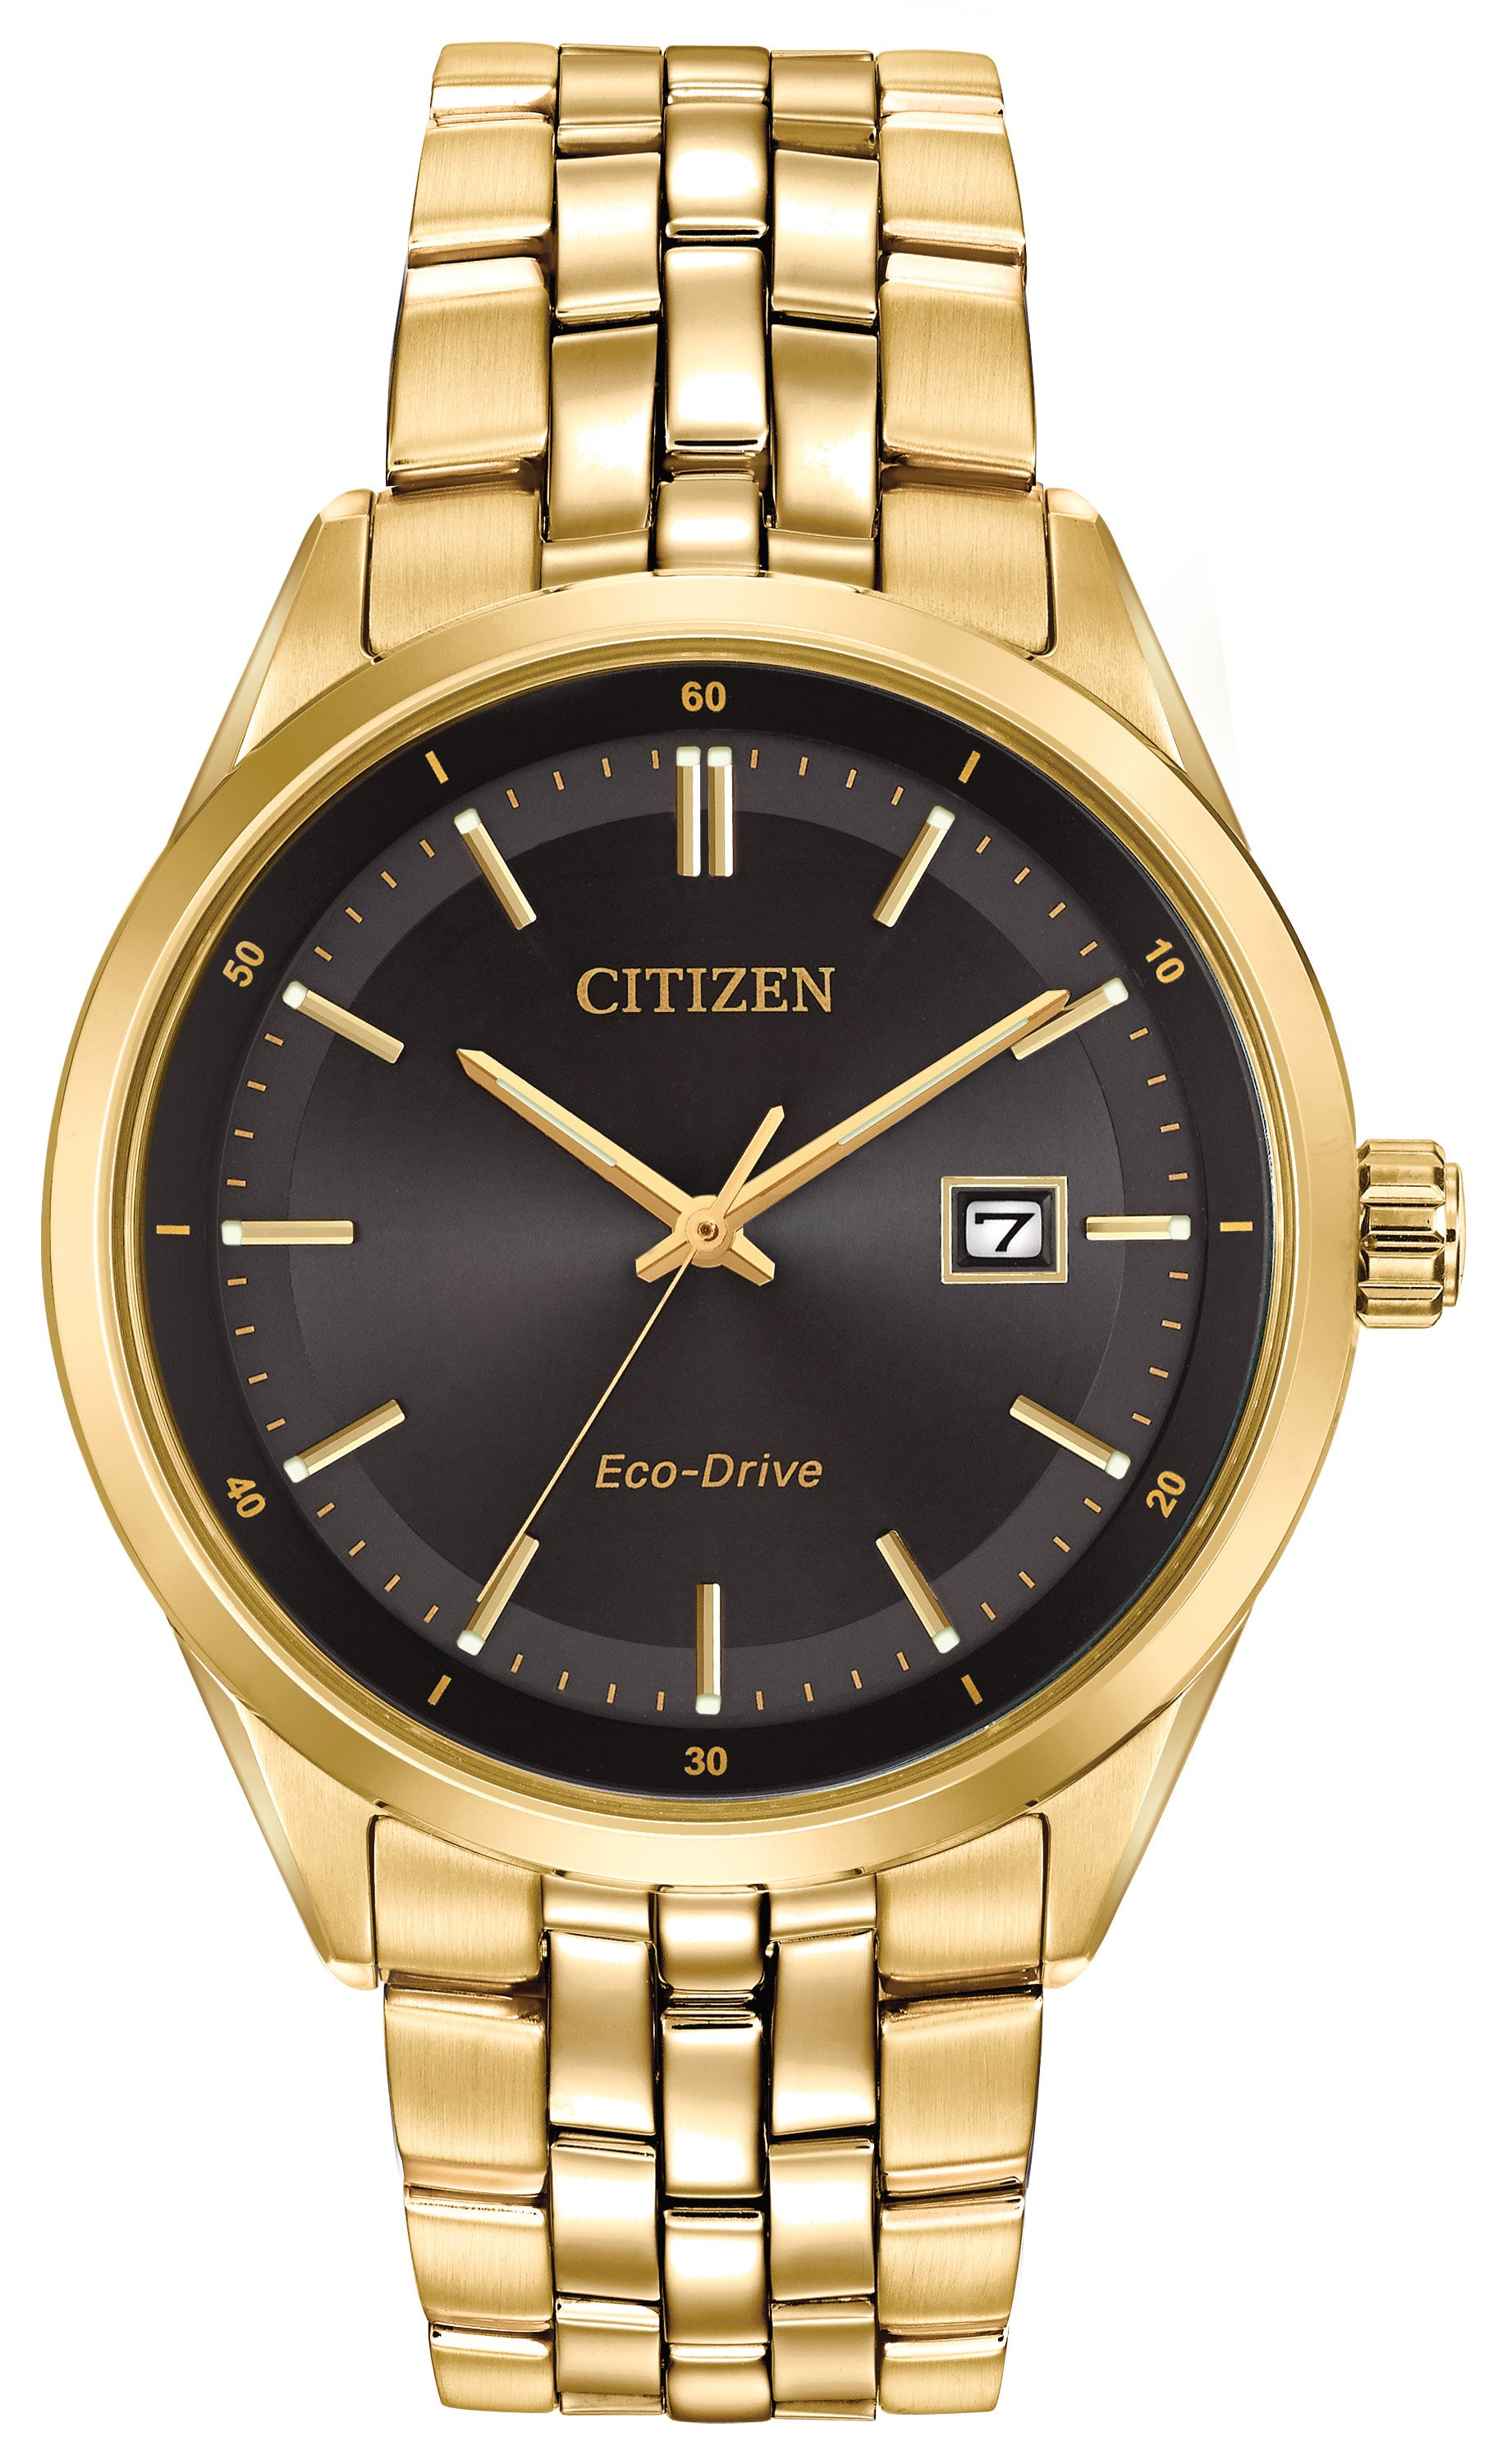 Citizen Mens Ecodrive Dress Watch In Gold Tone With Black Face